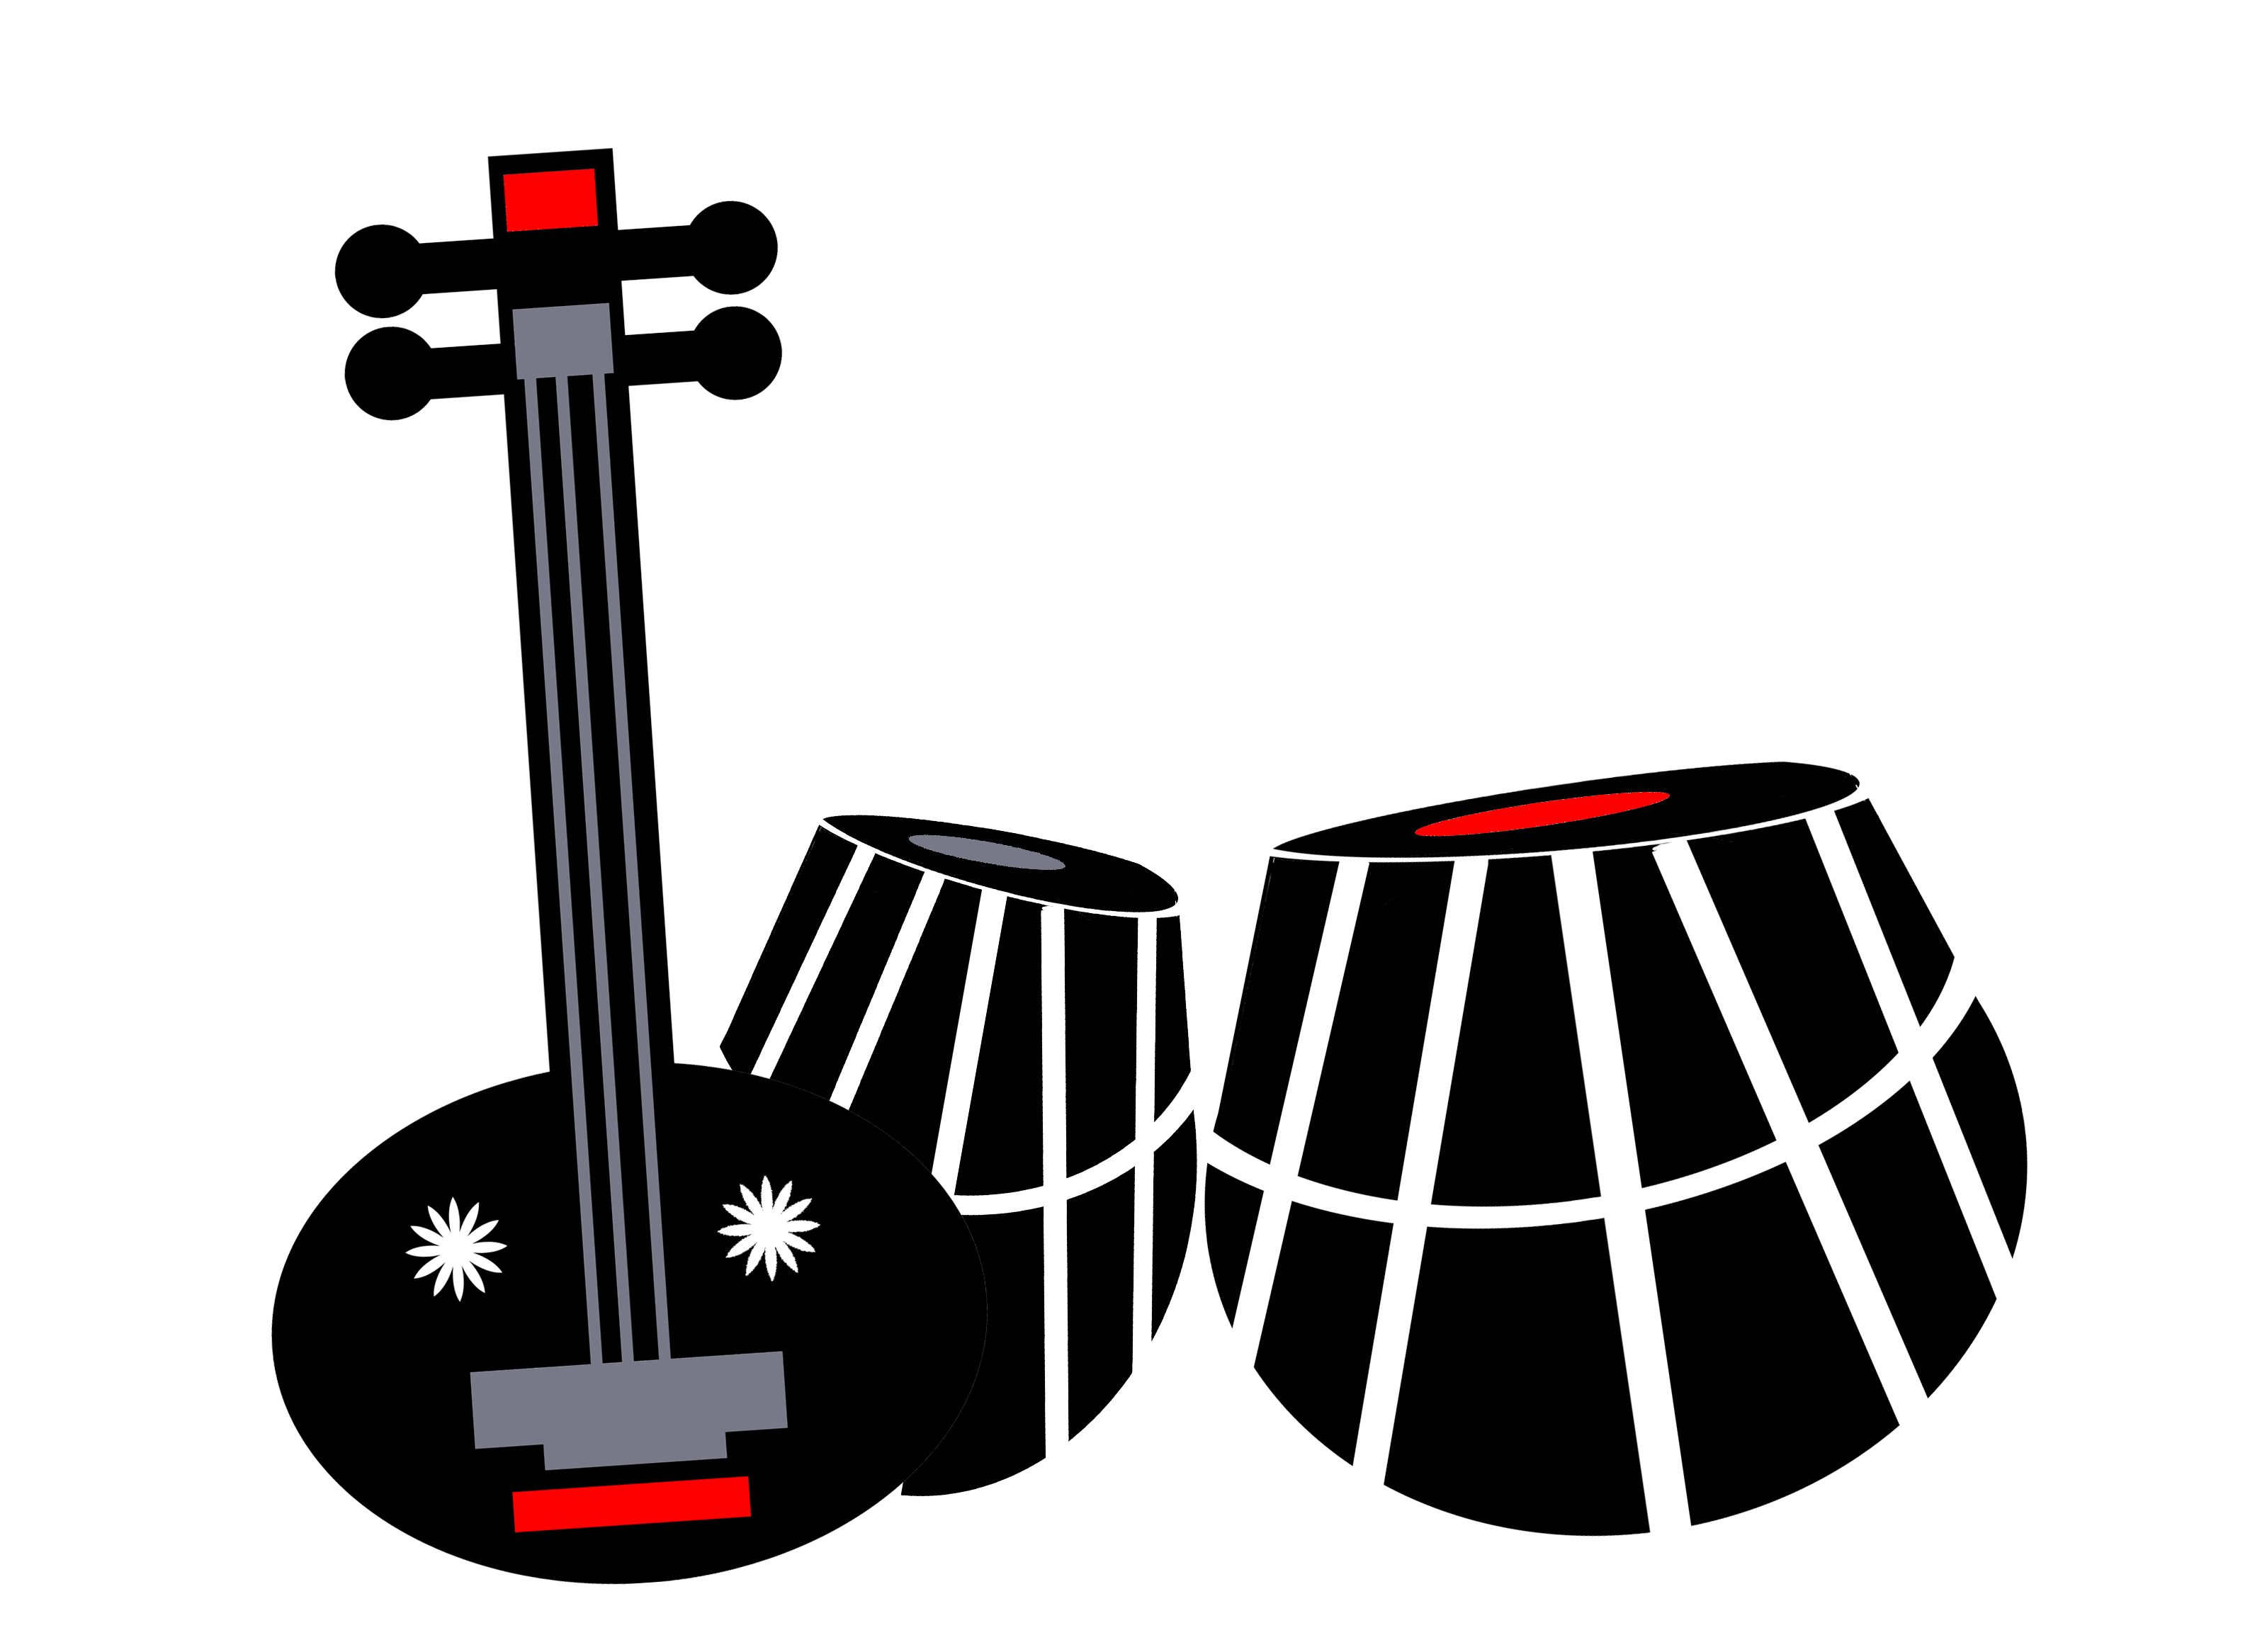 Abstract musical instrument clipart ideas graphic freeuse download musical instruments | vector art | Vector art, Abstract art, Art graphic freeuse download